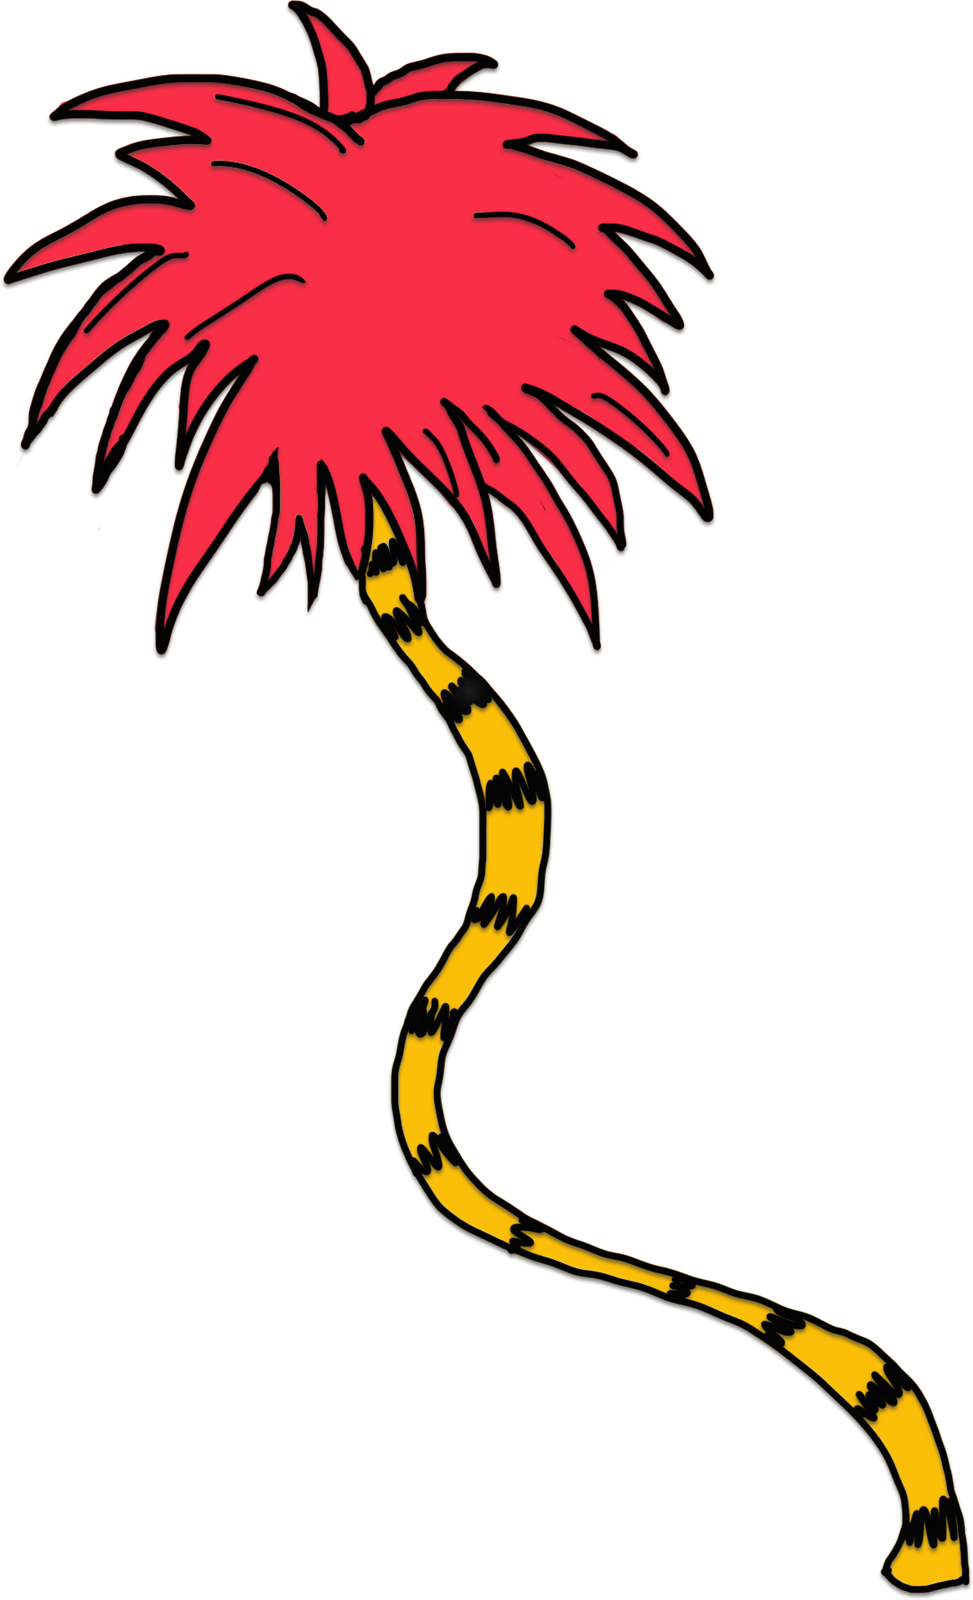 Dr seuss clipart black and white png clip art royalty free stock Download Png Black And White Lorax Trees Clipart - Dr Seuss ... clip art royalty free stock